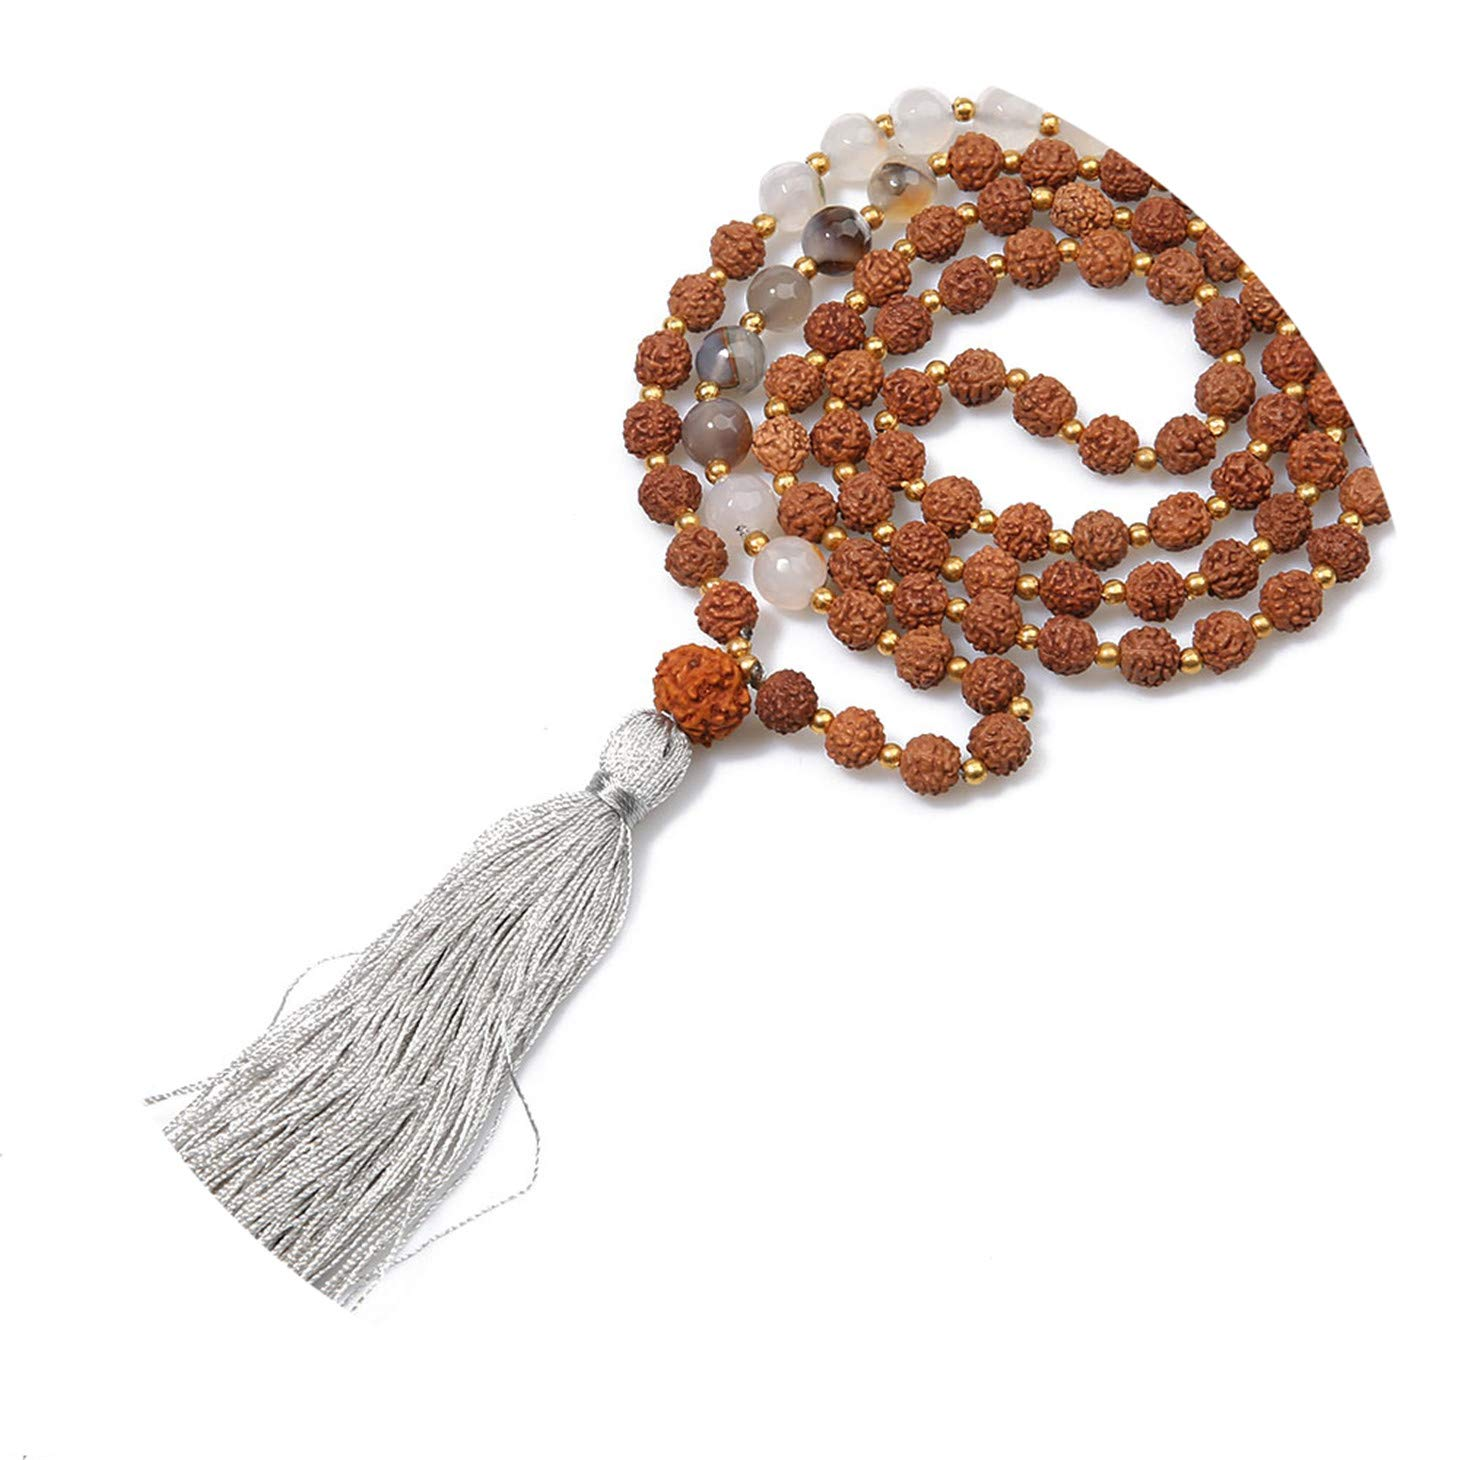 Olive Tayl Handmade Rudraksha Beads Ethnic Necklace Natural Stone Tassel Pray Meditation Necklace Women C